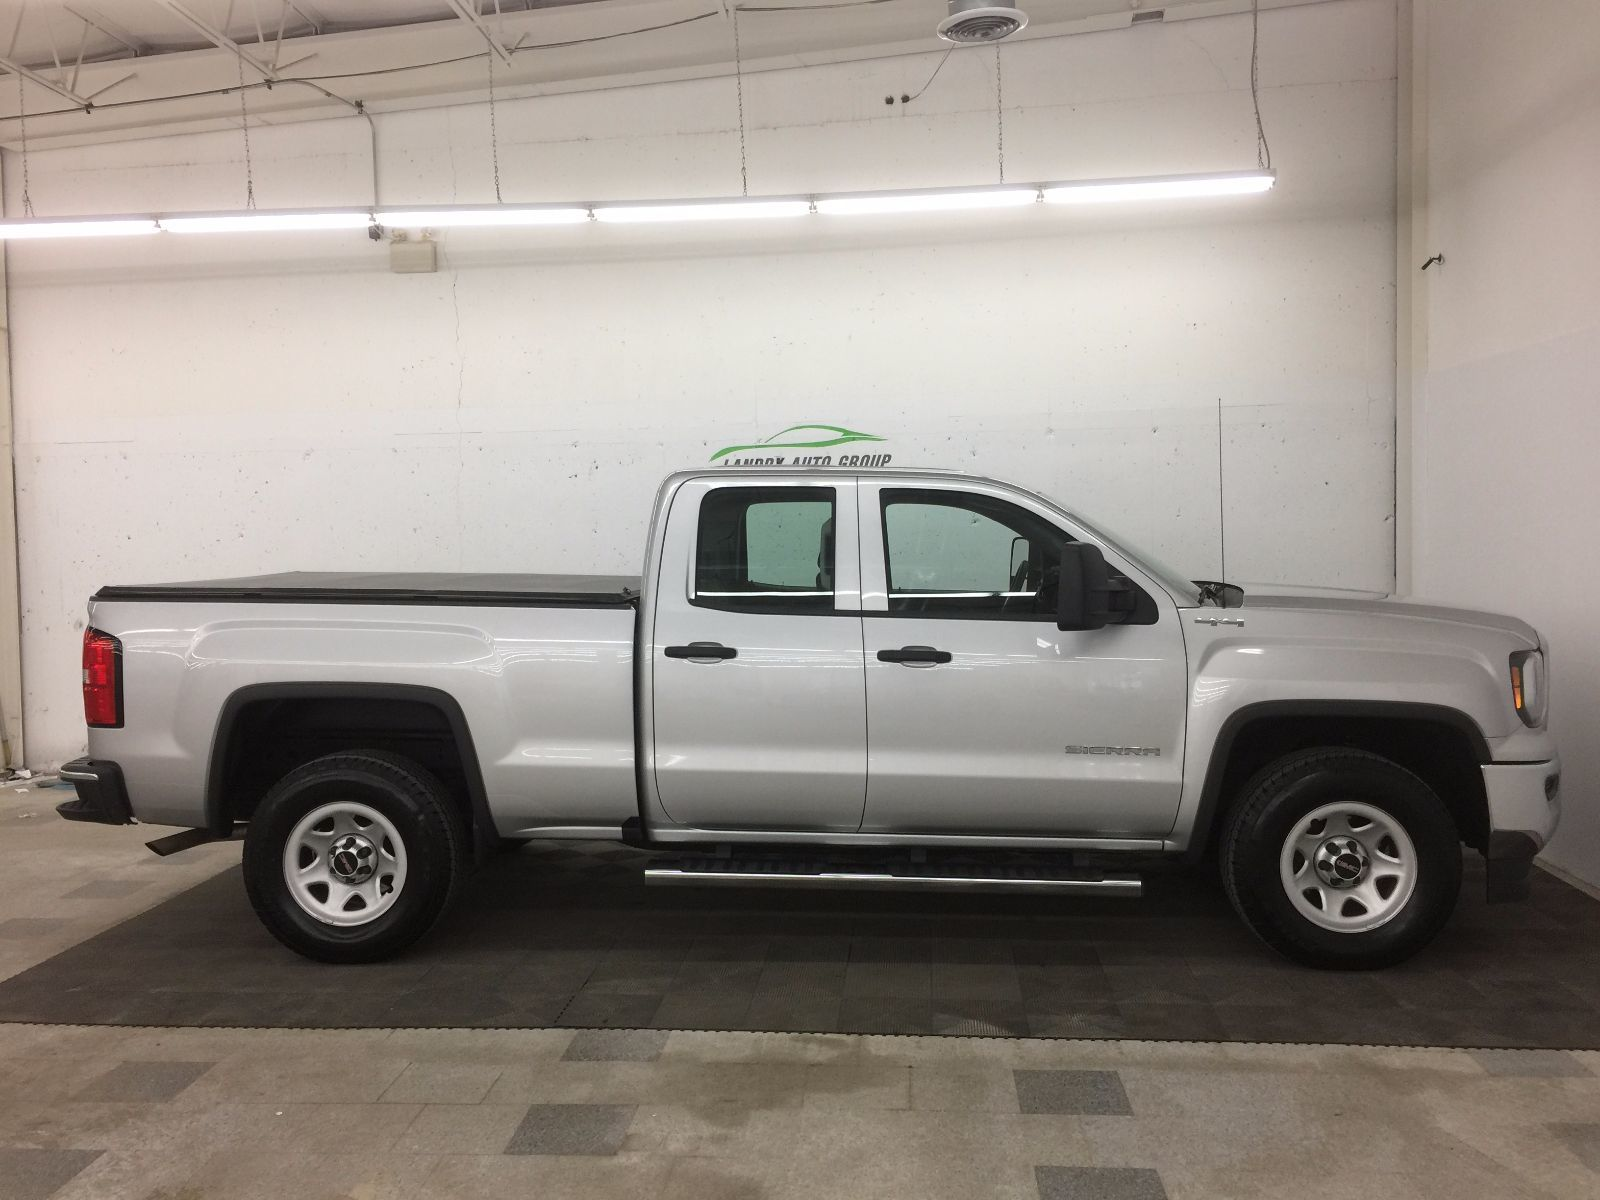 902 auto sales used 2016 gmc sierra 1500 for sale in dartmouth km0835. Black Bedroom Furniture Sets. Home Design Ideas